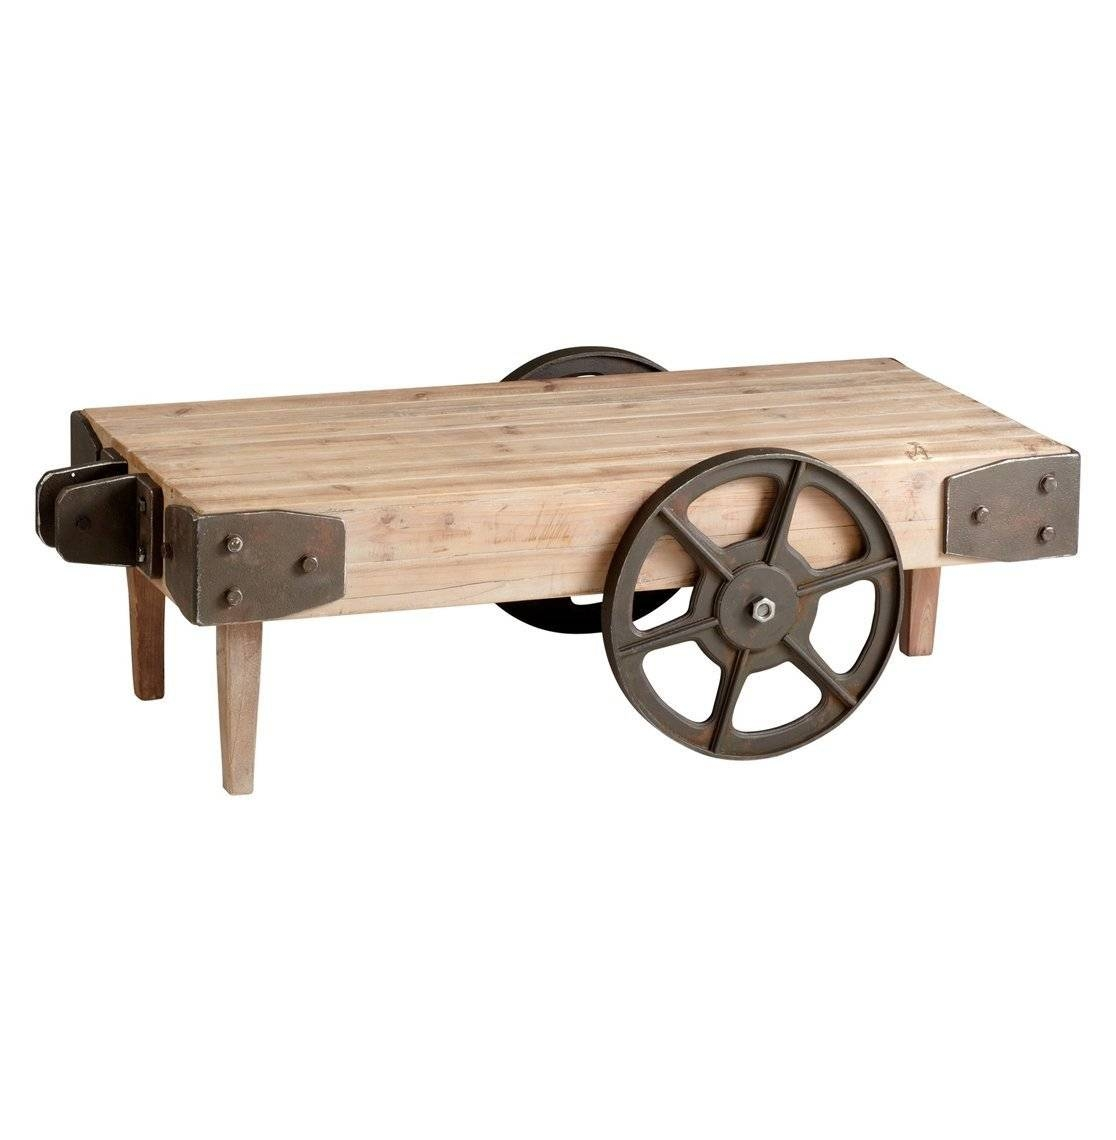 Coffee Tables: Enchanting Coffee Tables With Wheels Design Ideas within Wheels Coffee Tables (Image 10 of 30)